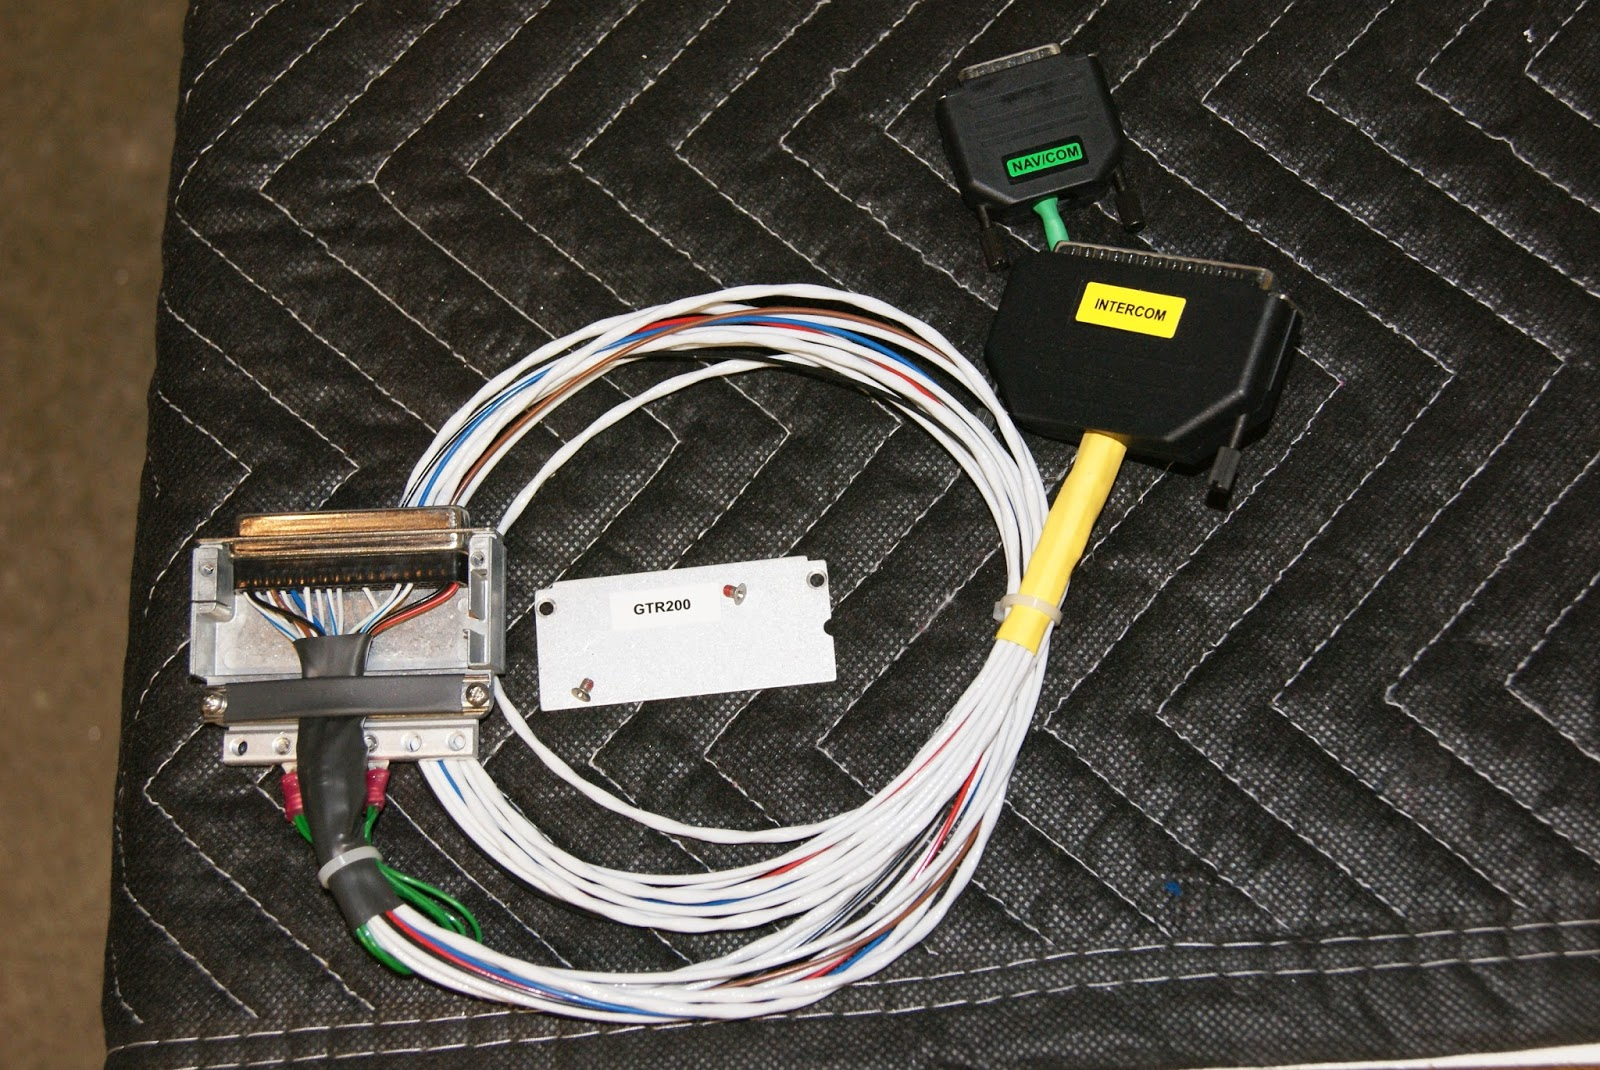 DSC01467 dog aviation john's rv 12 blog adding functions to the garmin gtr garmin wiring harness at mifinder.co